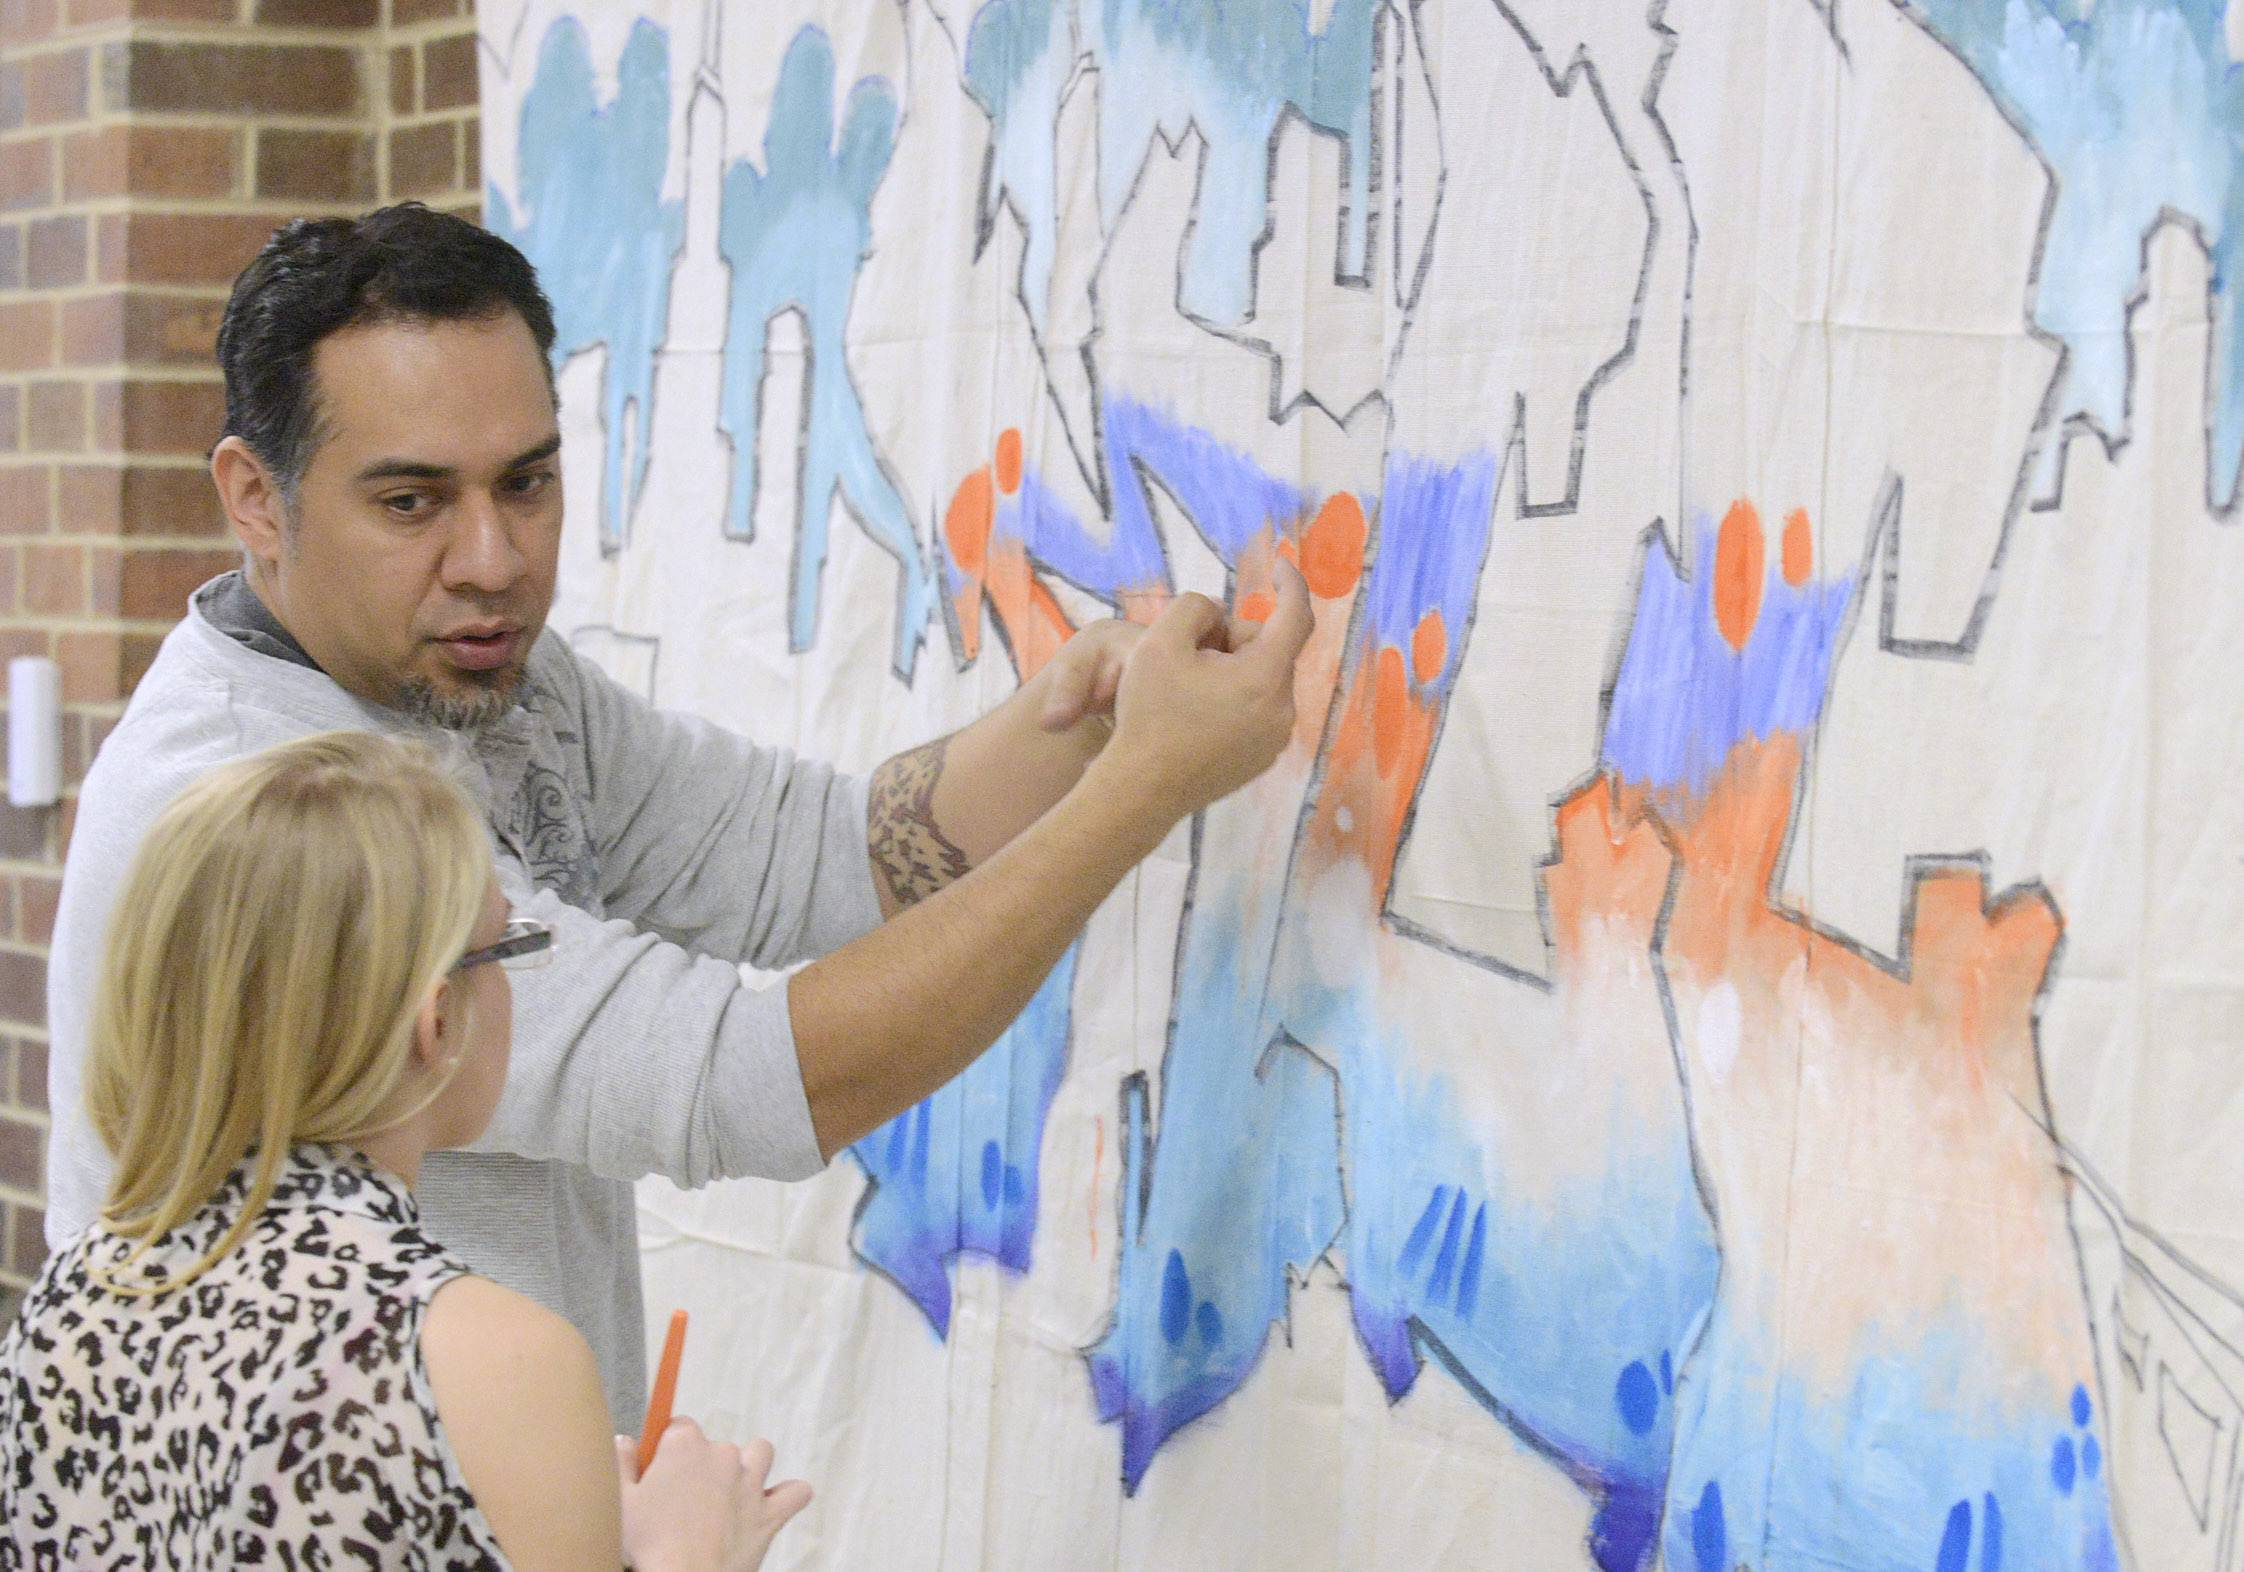 Chicago artist Nino Rodriguez gives McHenry County College student Laurissa Mortensen tips for painting on the graffiti-inspired mural he created Thursday. Rodriguez drew parts of the mural and students helped complete the painting.